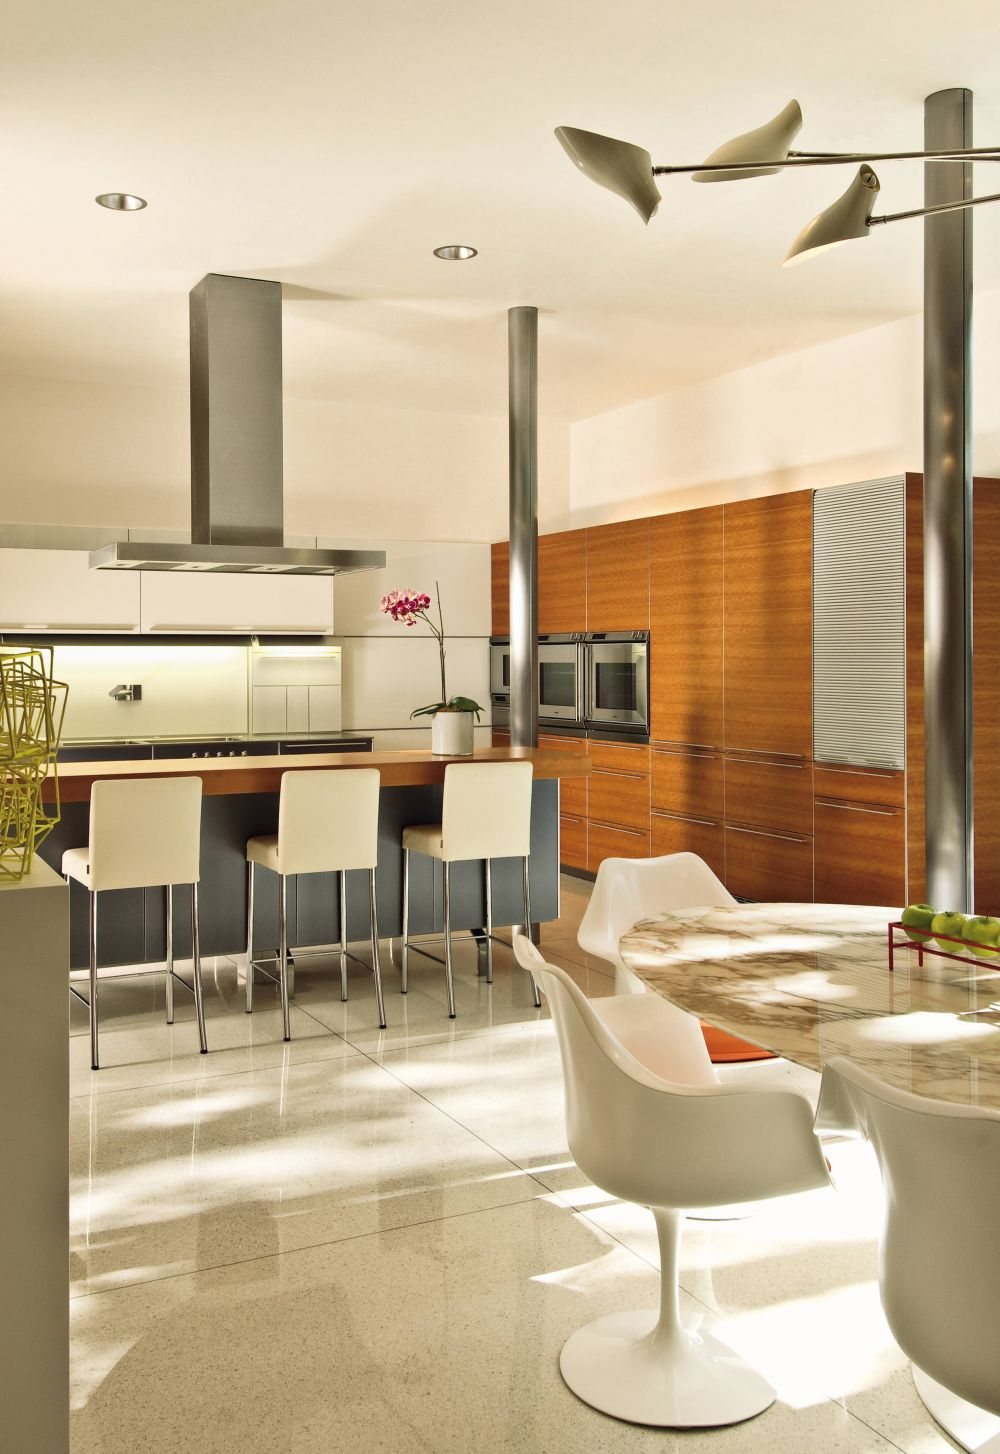 Modern Kitchen By Cadwallader Design By Architectural